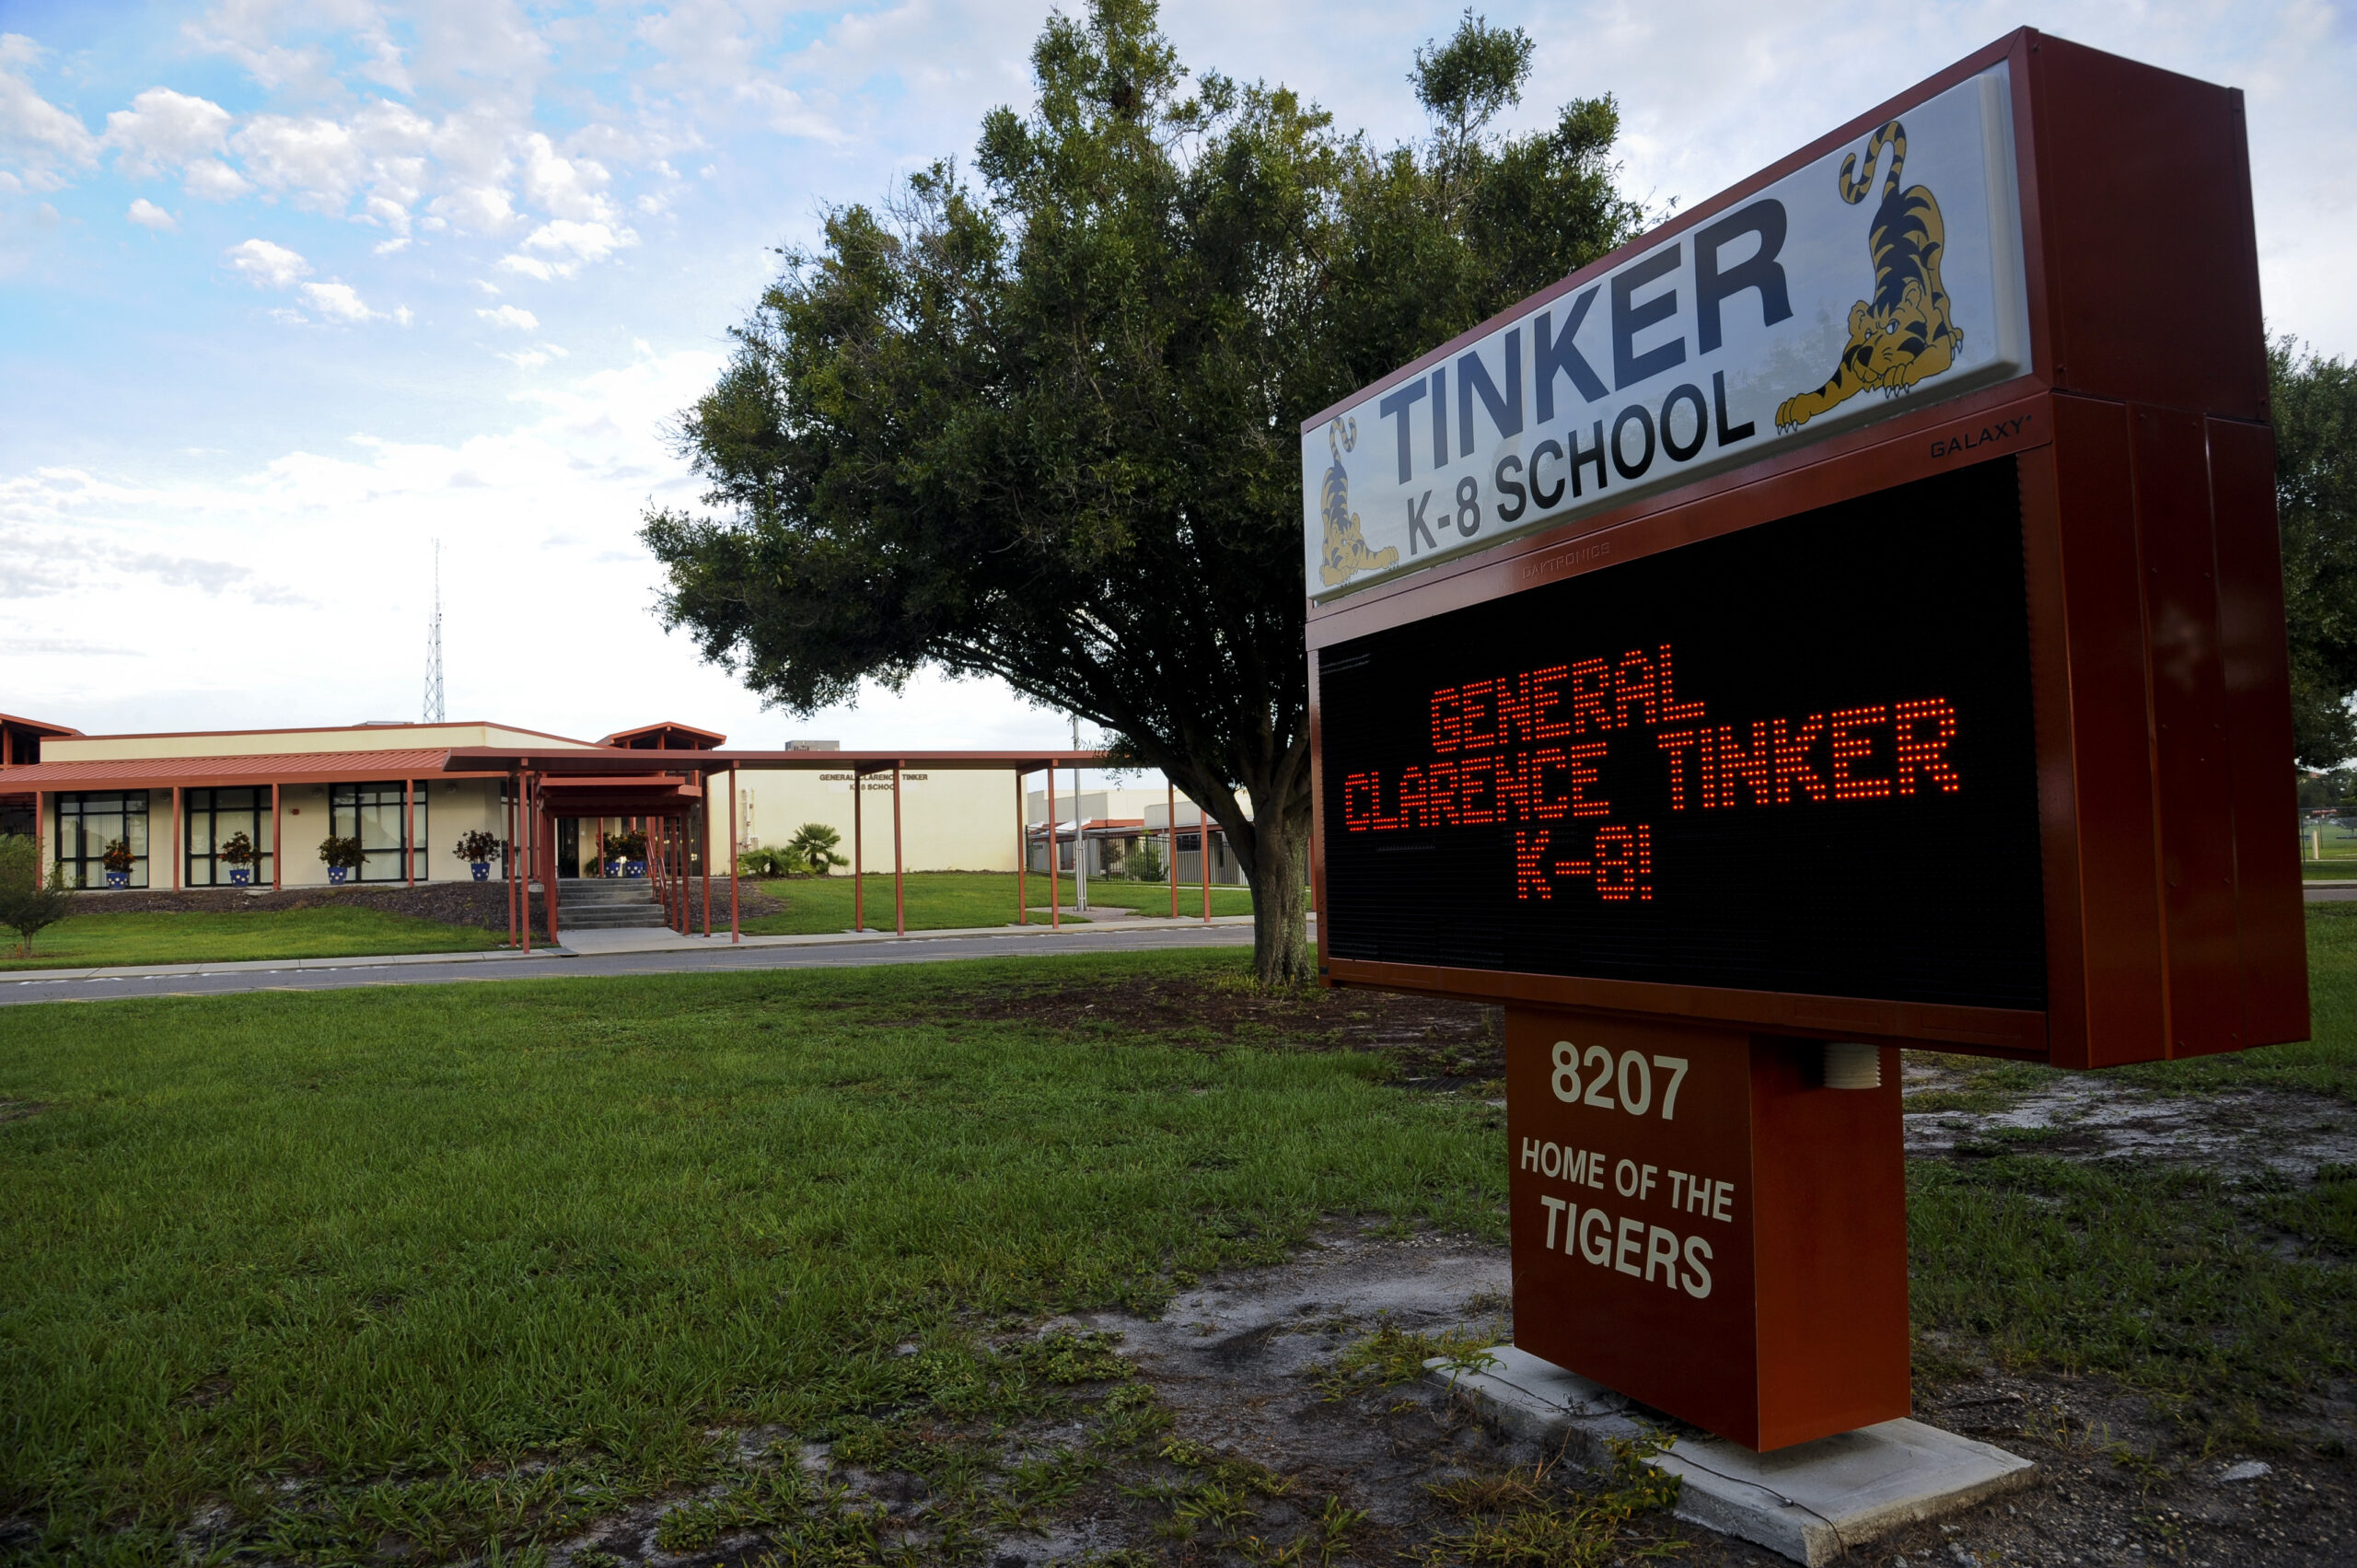 Tinker K-8 School: great effort to support military families